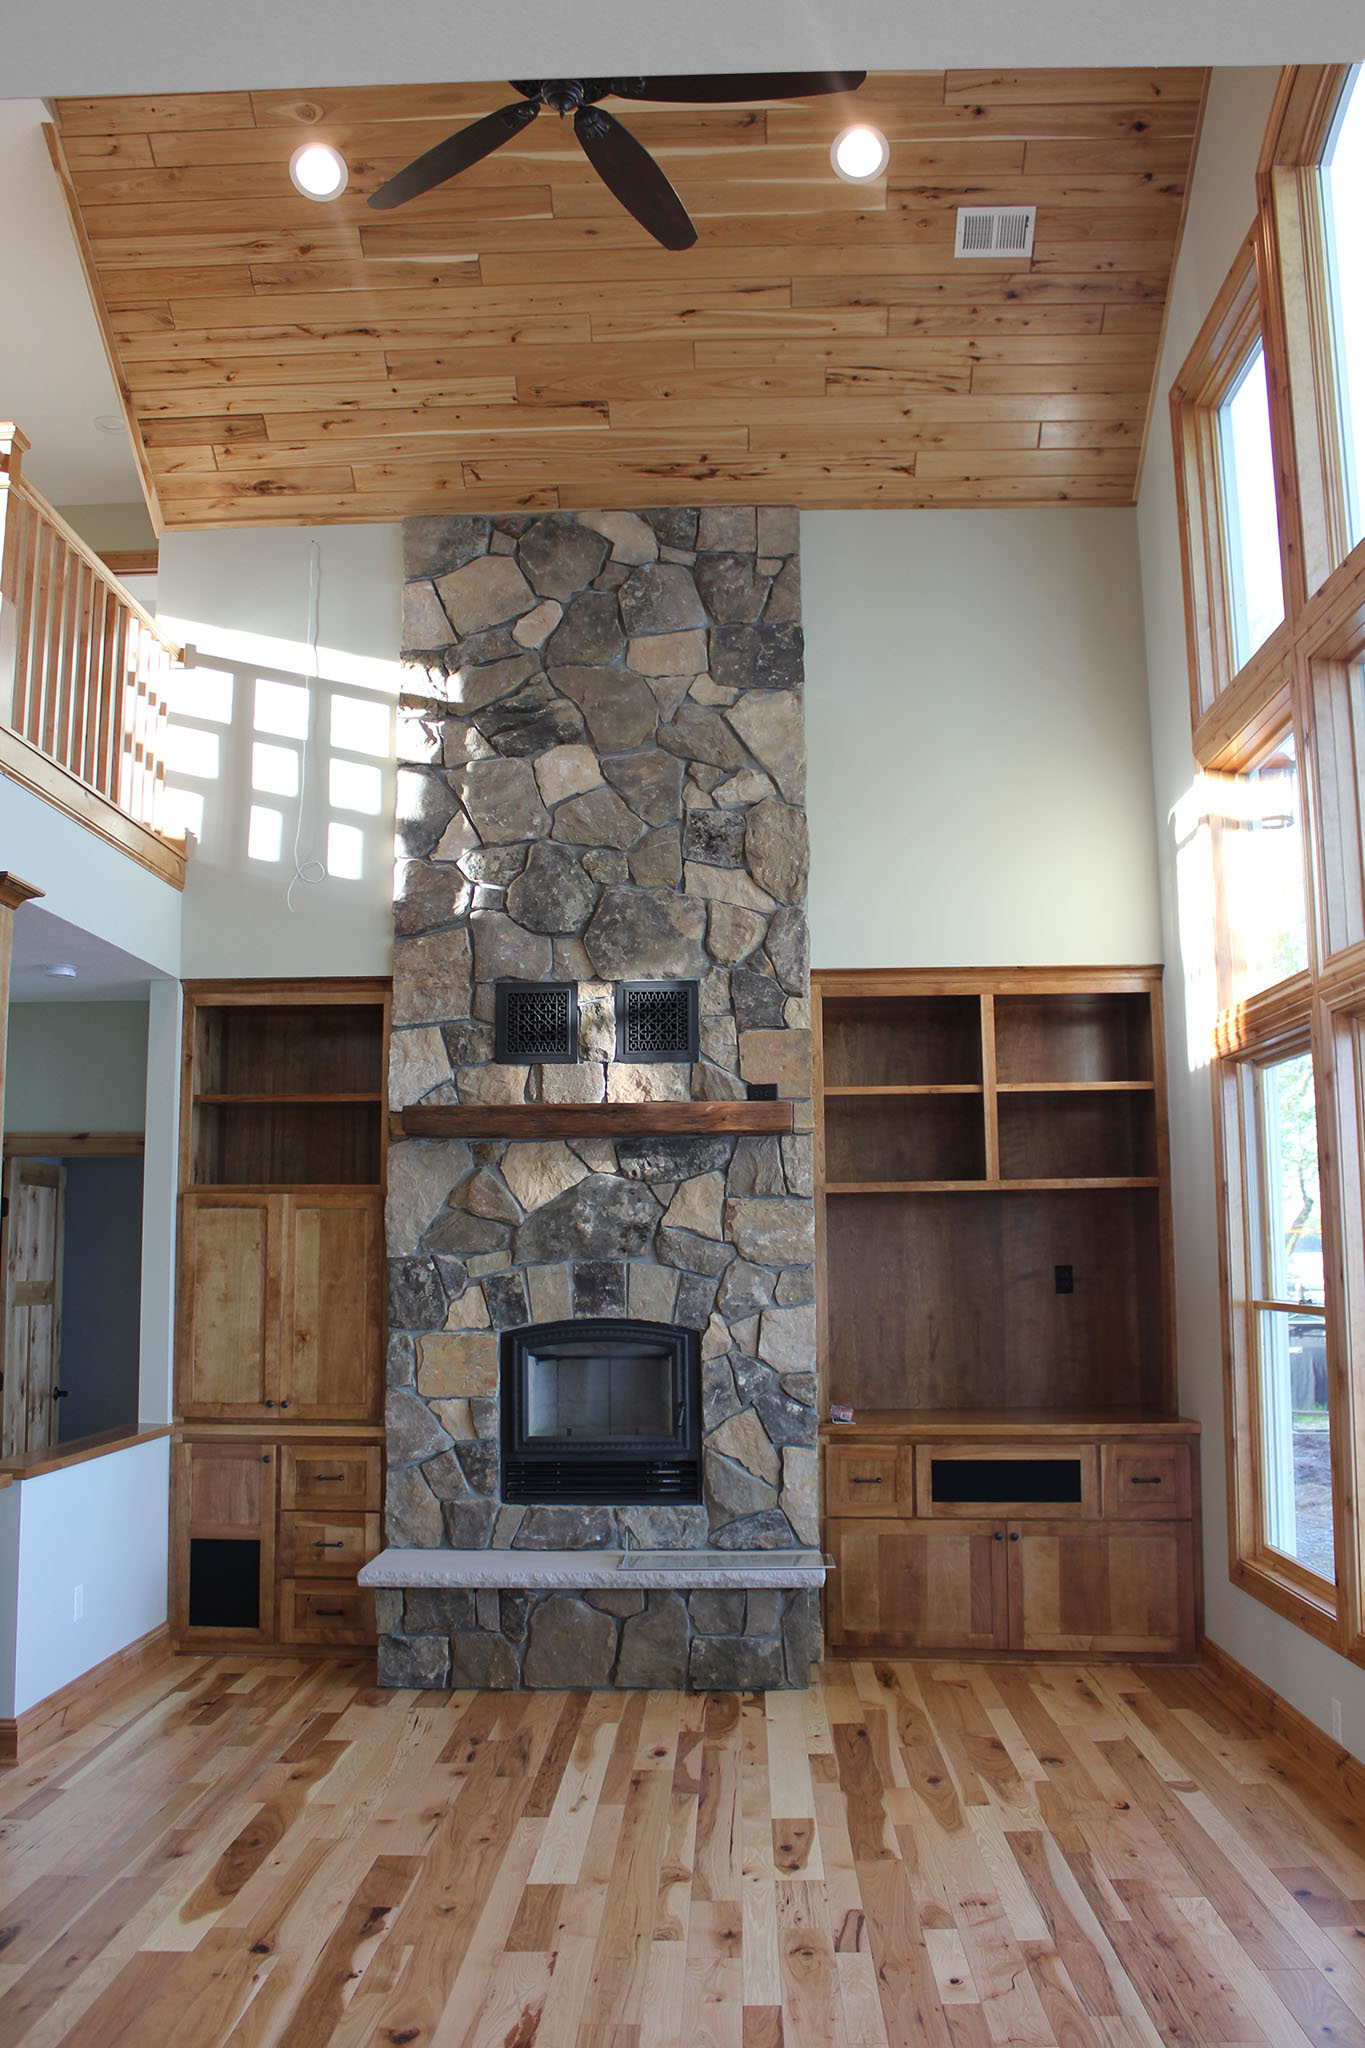 Great room with massive stone wood burning fireplace, built-in cabinets, hickory wood flooring and tongue and groove wood ceiling